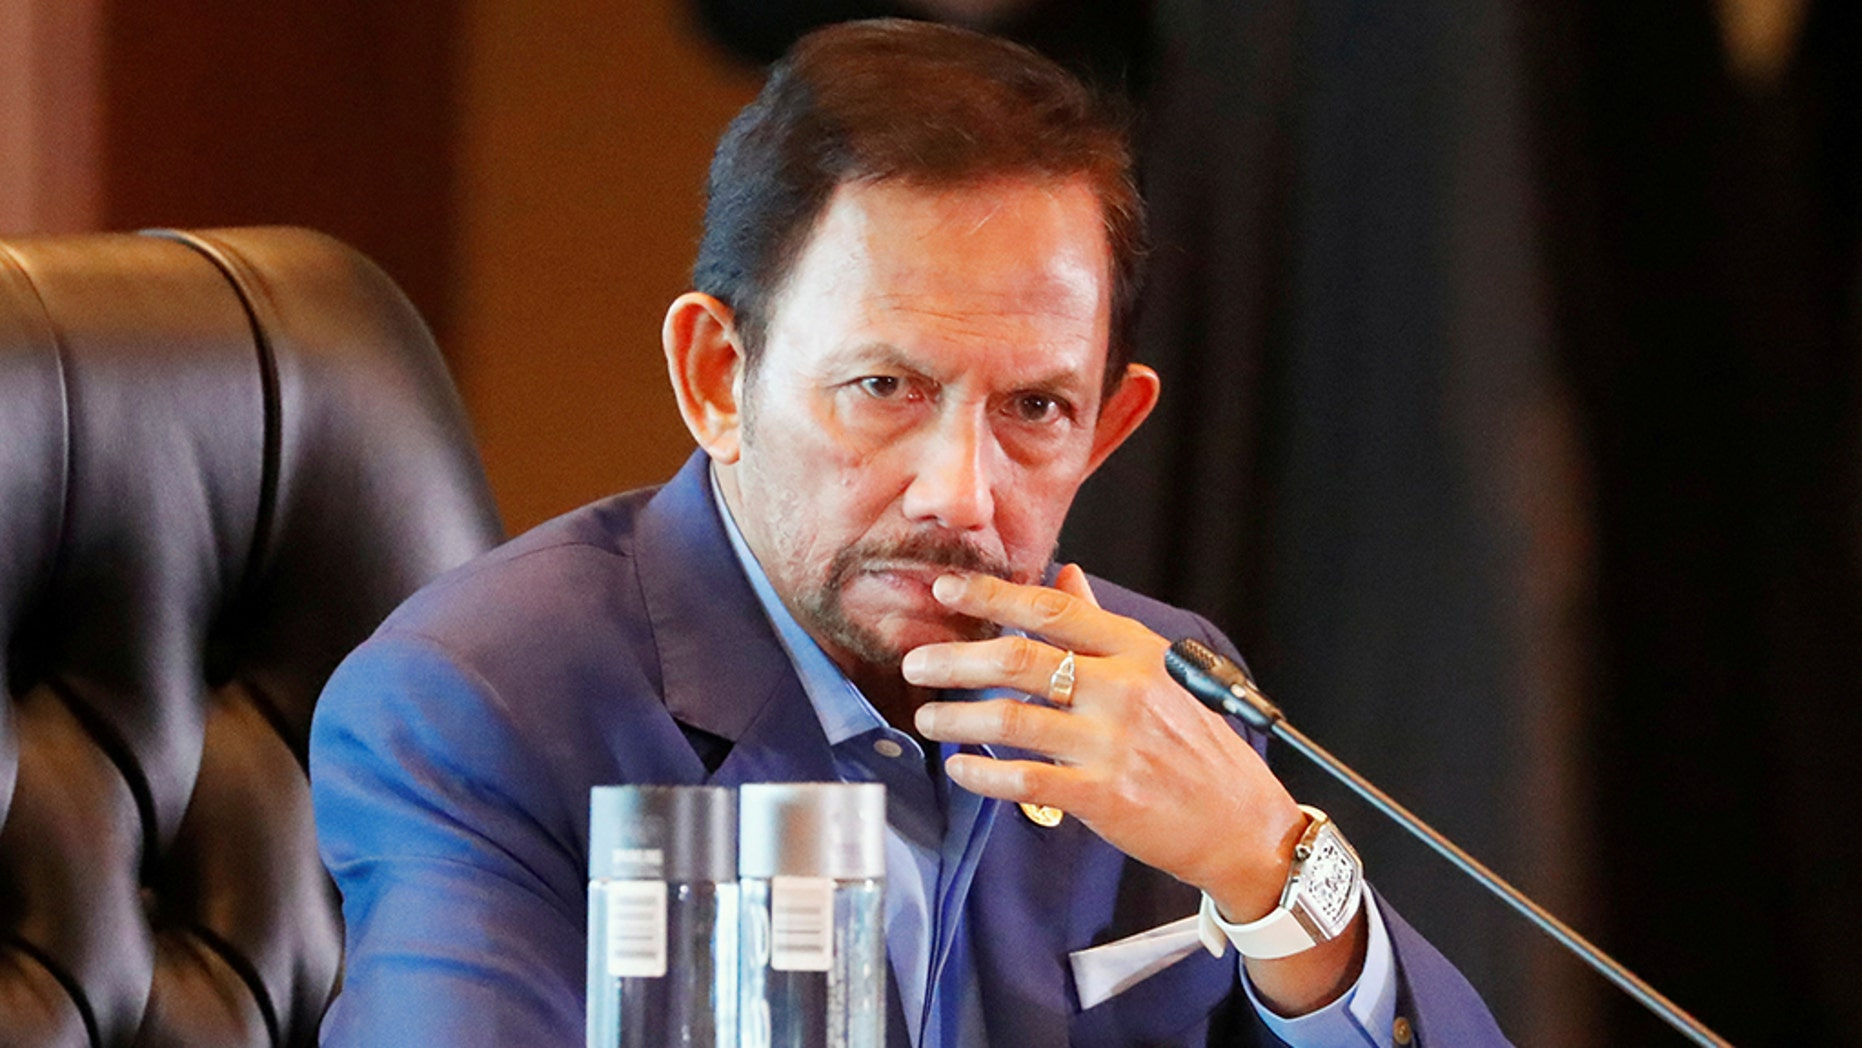 ?Brunei's Sultan Hassanal Bolkiah attends the retreat session during the APEC Summit in Port Moresby, Papua New Guinea, last November. (REUTERS/David Gray/File Photo)